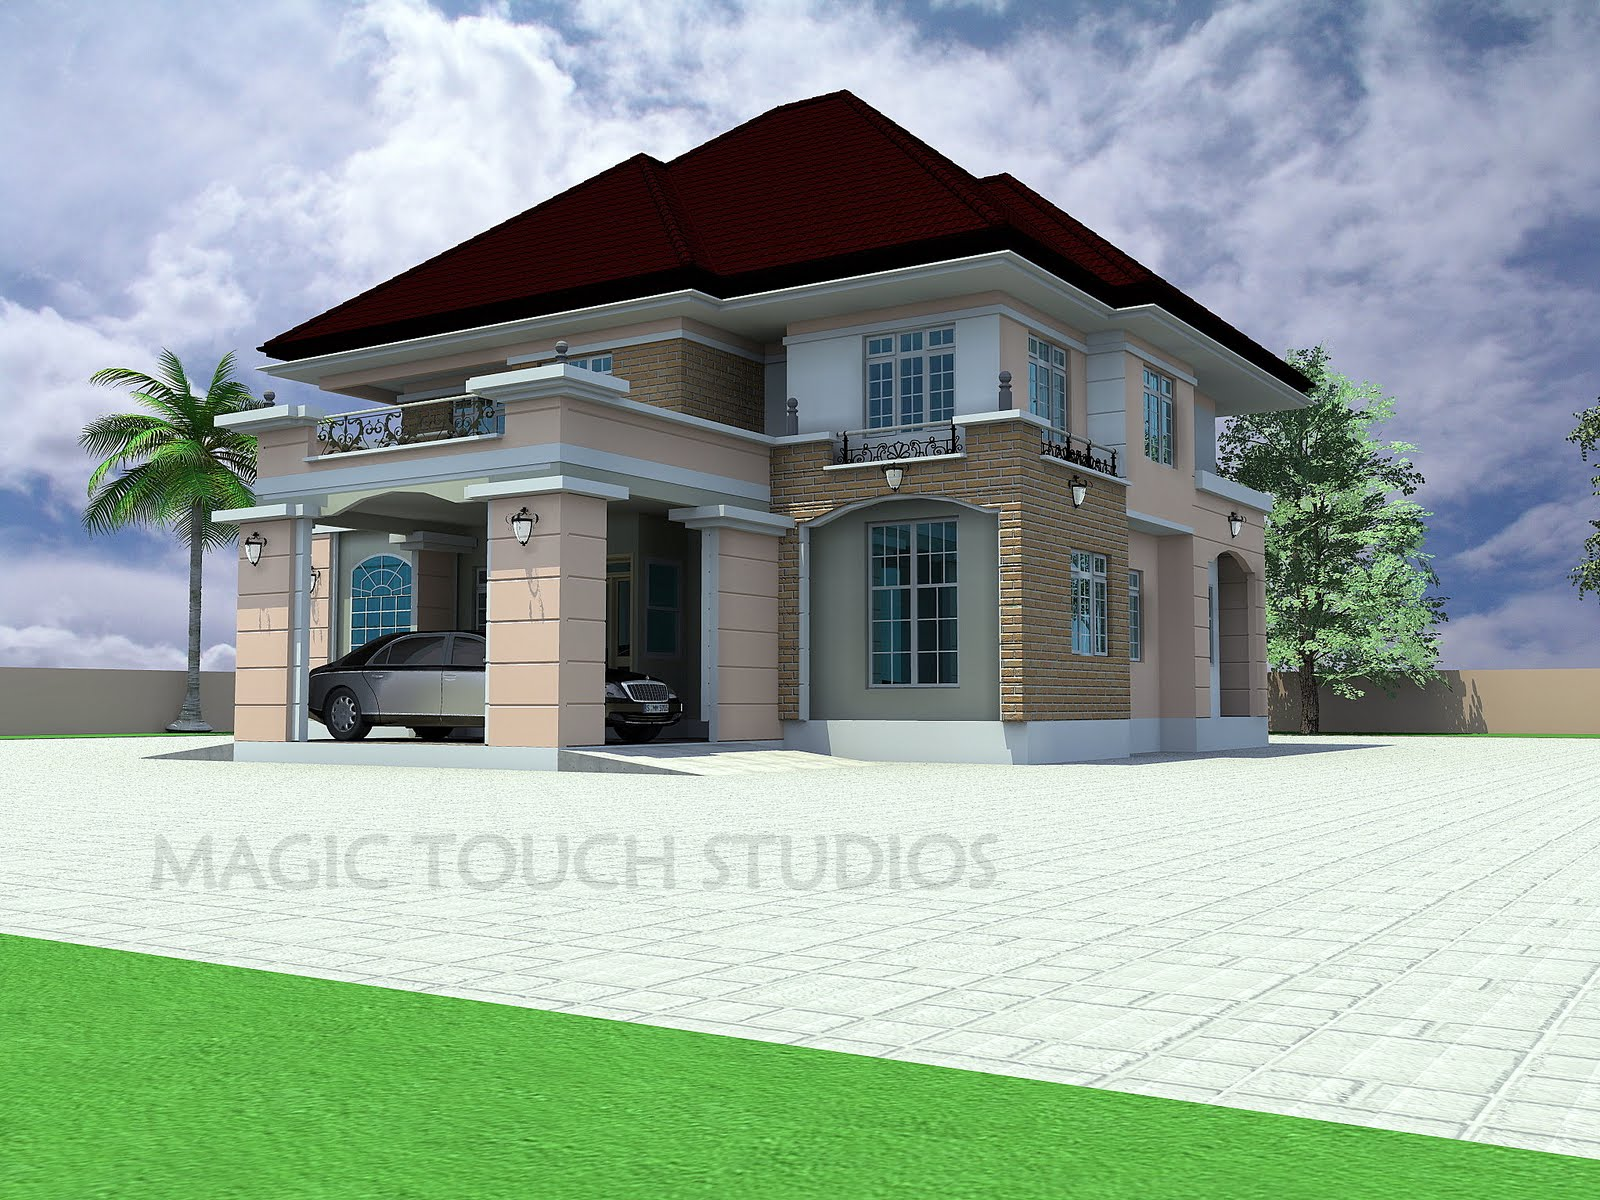 5 bedroom duplex residential homes and public designs for Good house photos